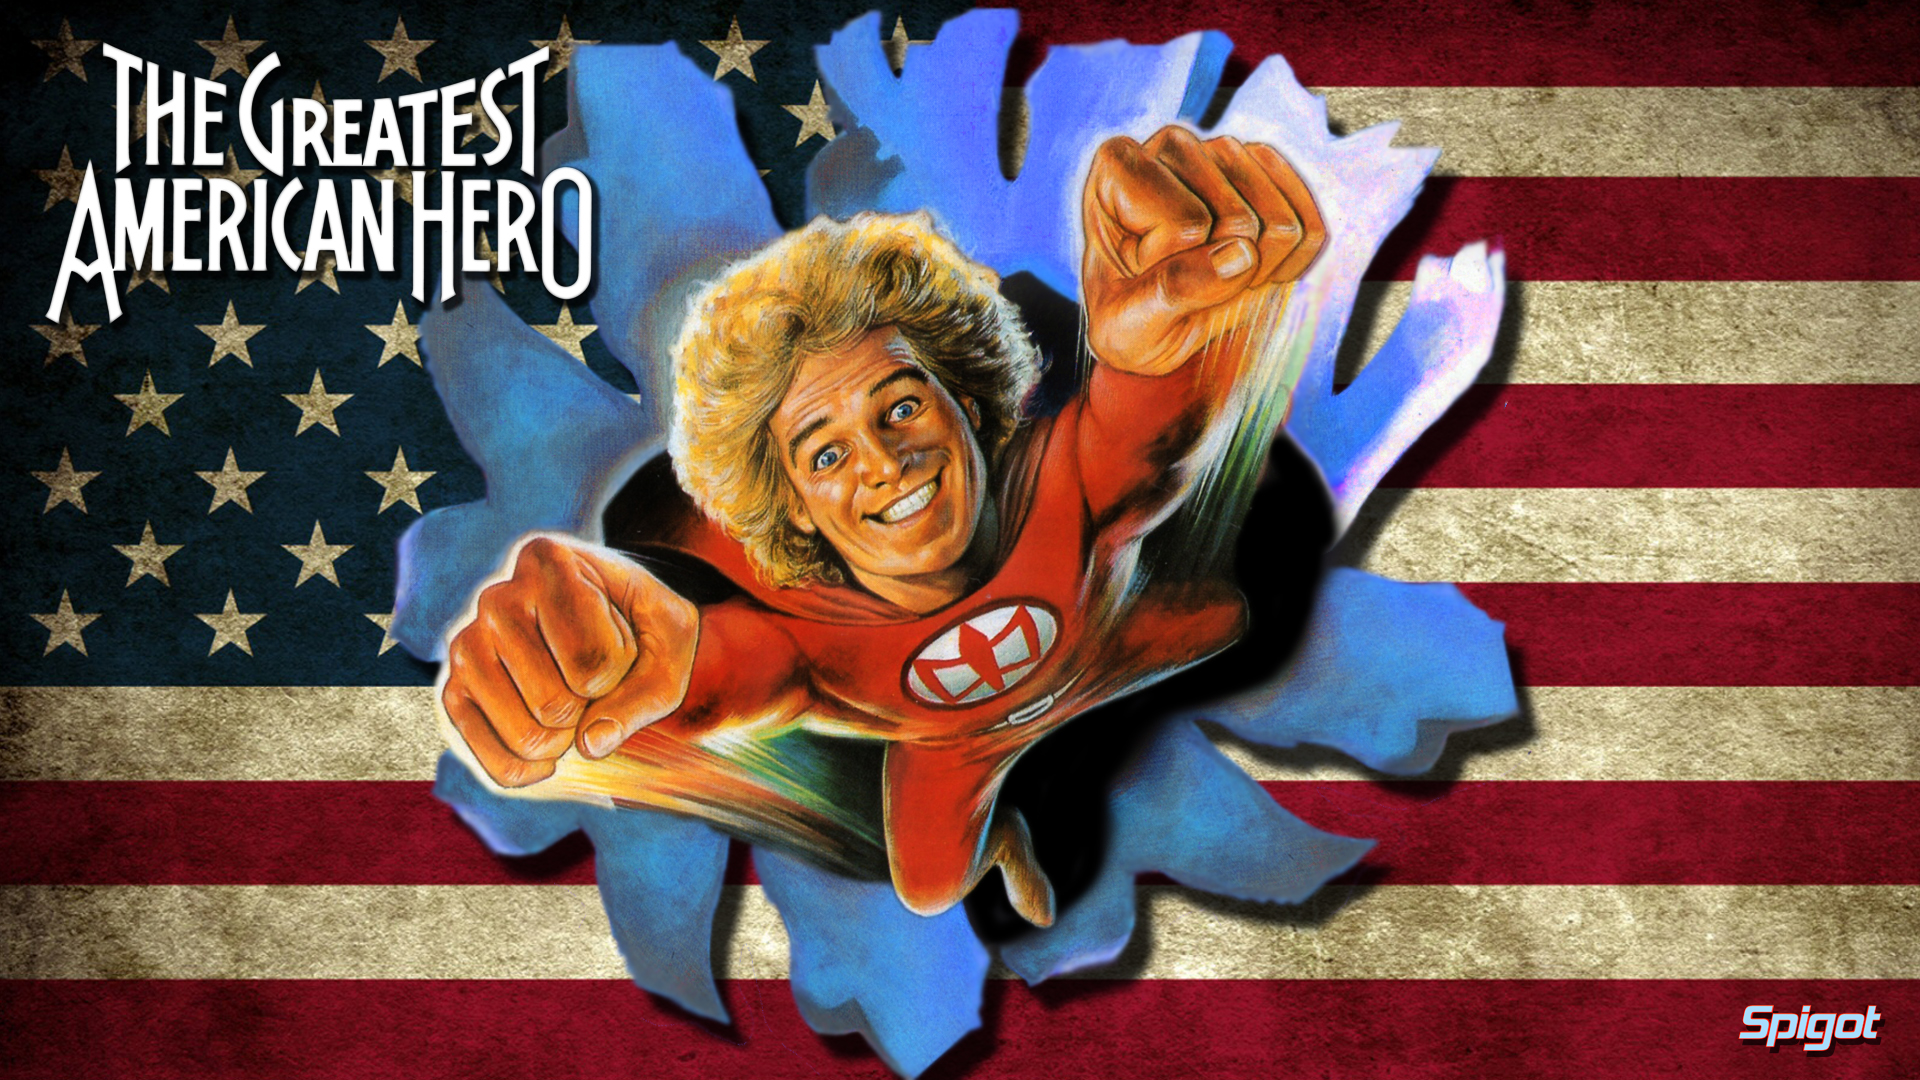 American Hero Movie The Greatest American Hero